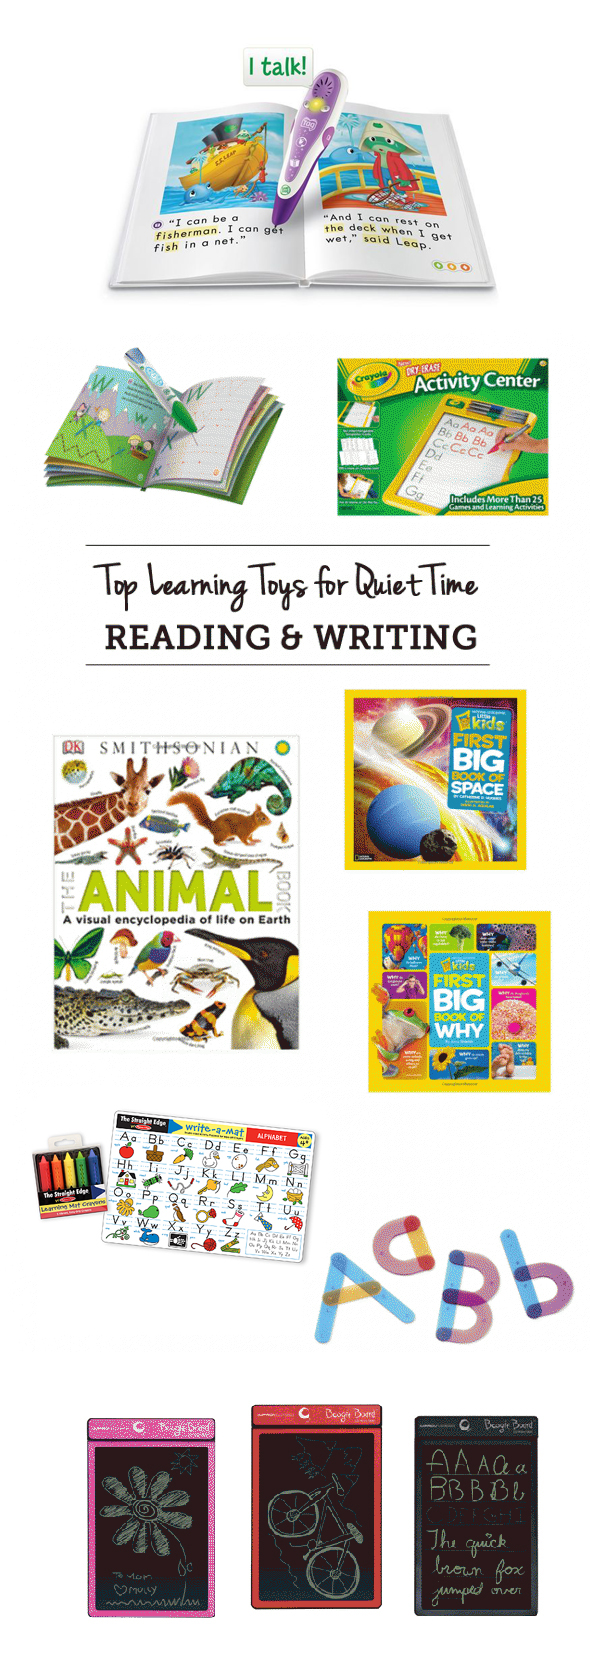 MPMK Gift Guide: Quiet Time Toys- The best picks for practicing reading and writing during quiet time - great ideas so mom can get stuff done or spend some one on one time with a sibling